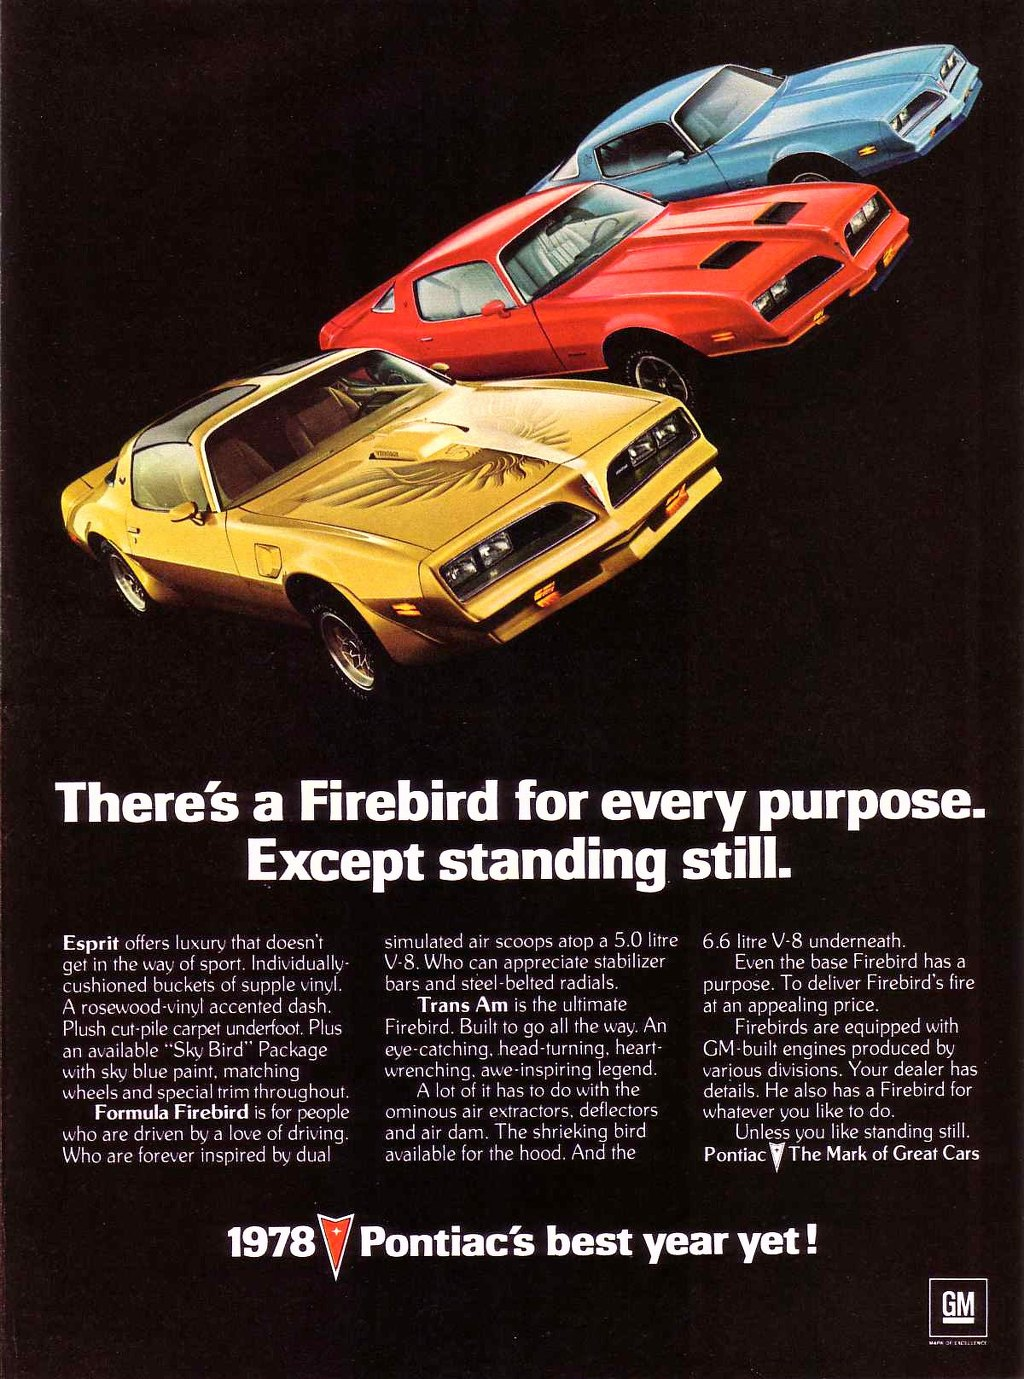 There's a Firebird for every purpose. Except standing still.  Esprit offers luxury that doesn't get in the way of sport. Individually-cushioned buckets of supple vinyl. A rosewood-vinyl accented dash. Plush cut-pile carpet underfoot. Plus an available ''Sky Bird- Package with sky blue paint, matching wheels and special trim throughout. Formula Firebird is for people who are driven by a love of driving. Who are forever inspired by dual  simulated air scoops atop a 5.0 litre V-8. Who can appreciate stabilizer bars and steel-belted radials. Trans Am is the ultimate Firebird. Built to go all the way. An eye-catching. head-turning, heart-wrenching. awe-inspiring legend. A lot of it has to do with the ominous air extractors. deflectors and air dam. The shrieking bird available for the hood. And the  6.6 litre V-8 underneath. Even the base Firebird has a purpose. To deliver Firebird's fire at an appealing price. Firebirds are equipped with GM-built engines produced by various divisions. Your dealer has details. He also has a Firebird for whatever you like to do. Unless you like standing still. Pontiac VThe Mark of Great Cars  1978 Pontiac's best year yet !  GM